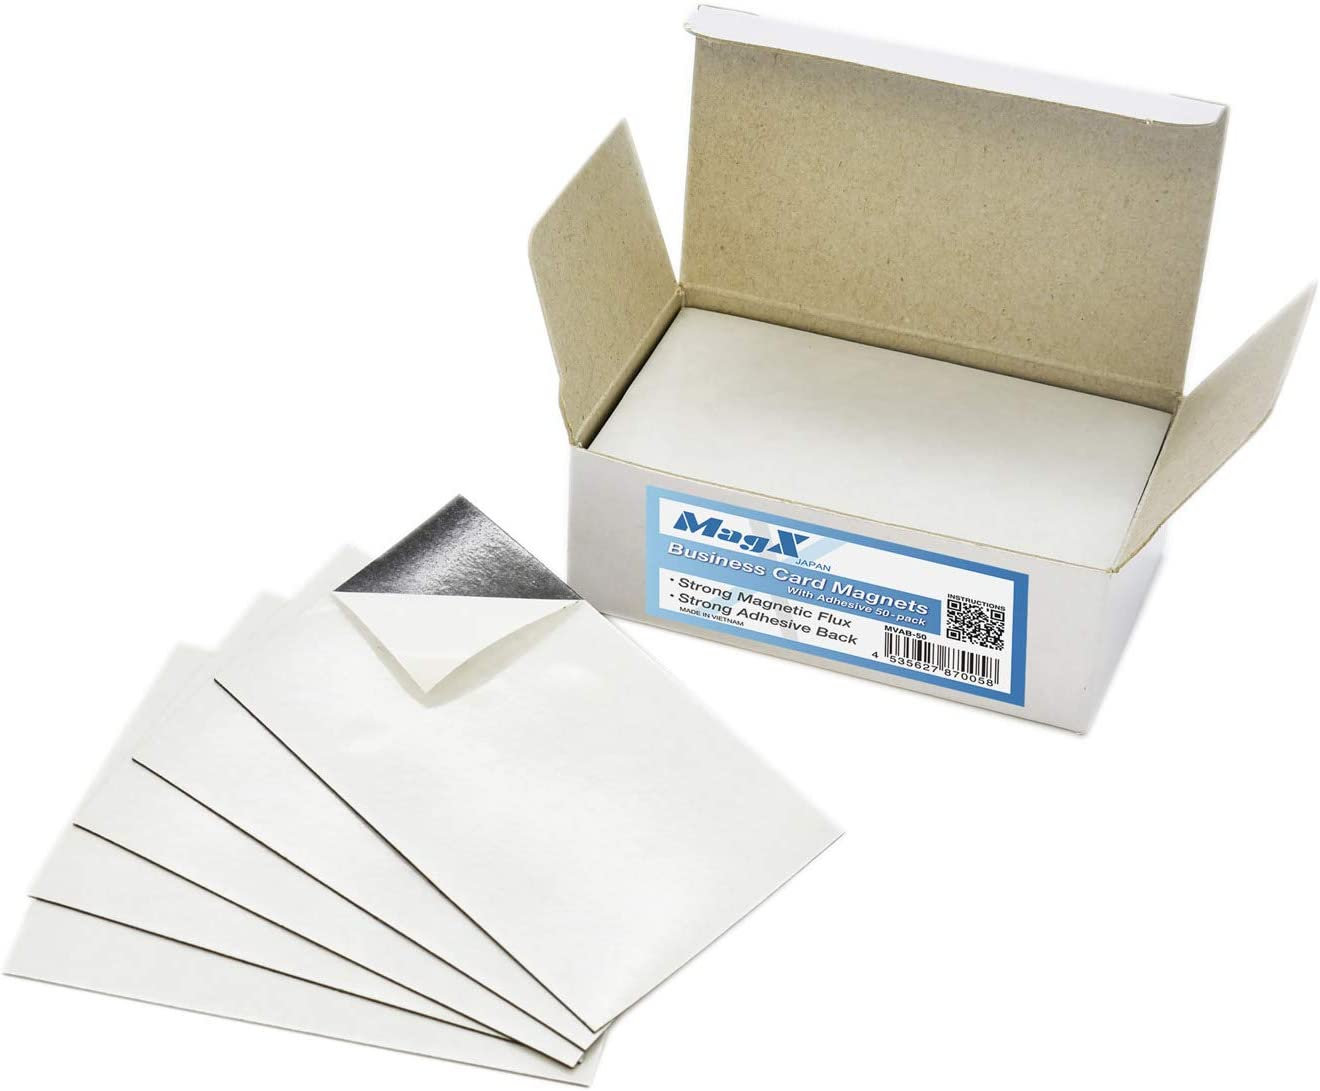 Sacramento Mall MagX Magnetic Business Card with 2x3.5 inch New Free Shipping Adhesive 50-pack M